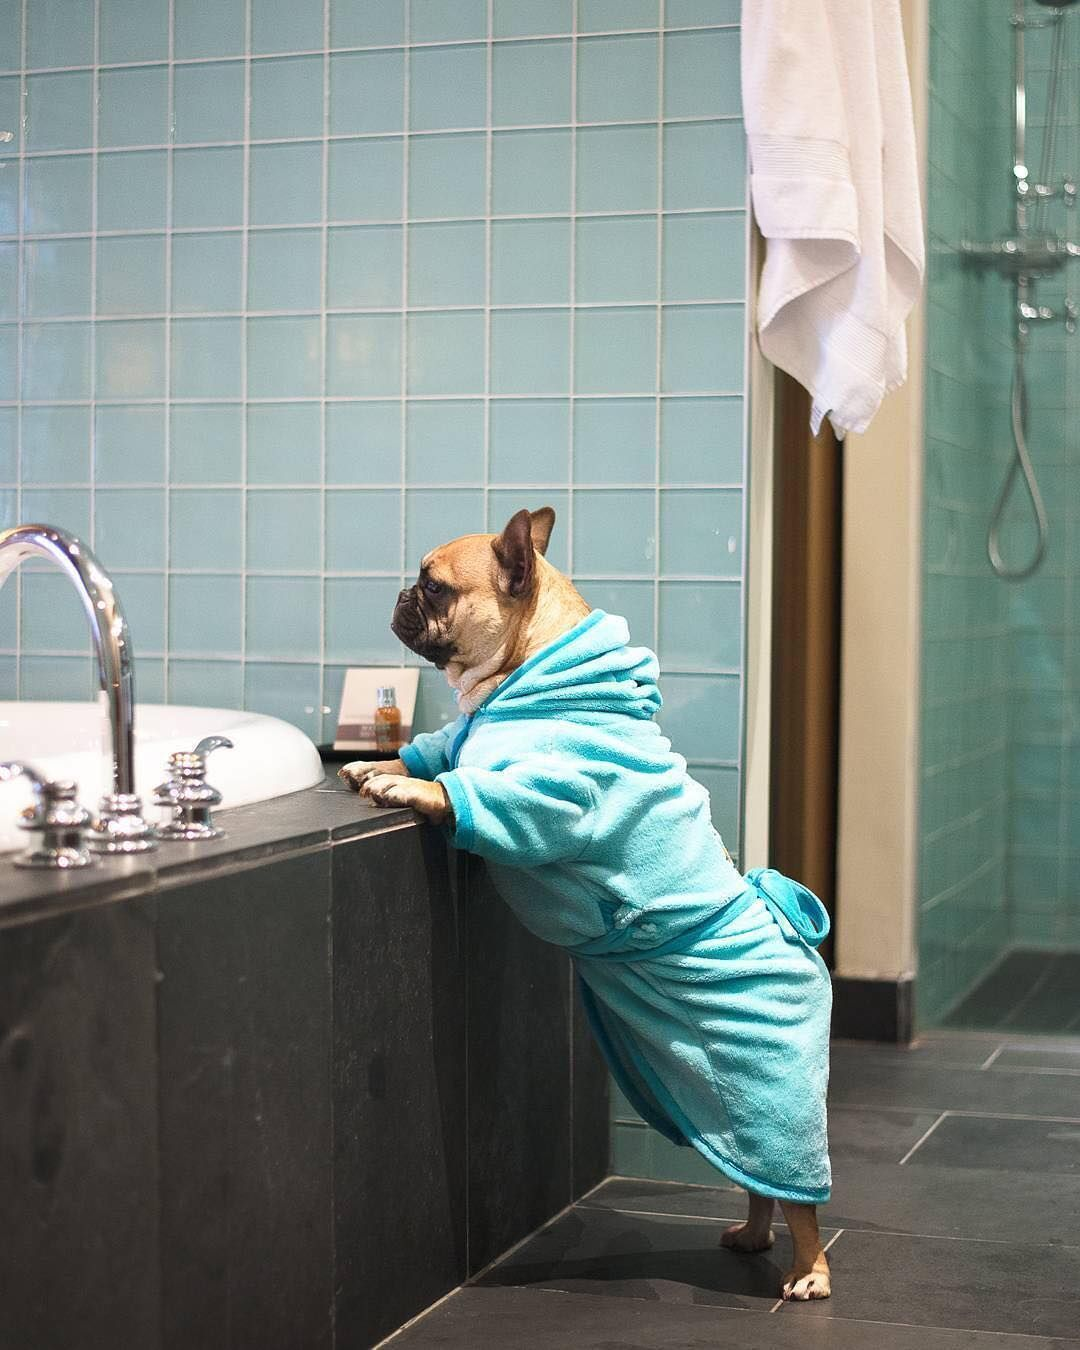 Too Busy Living The High Life Pampered French Bulldog Buldog Cute French Bulldog Bulldog Breeds French Bulldog Breed